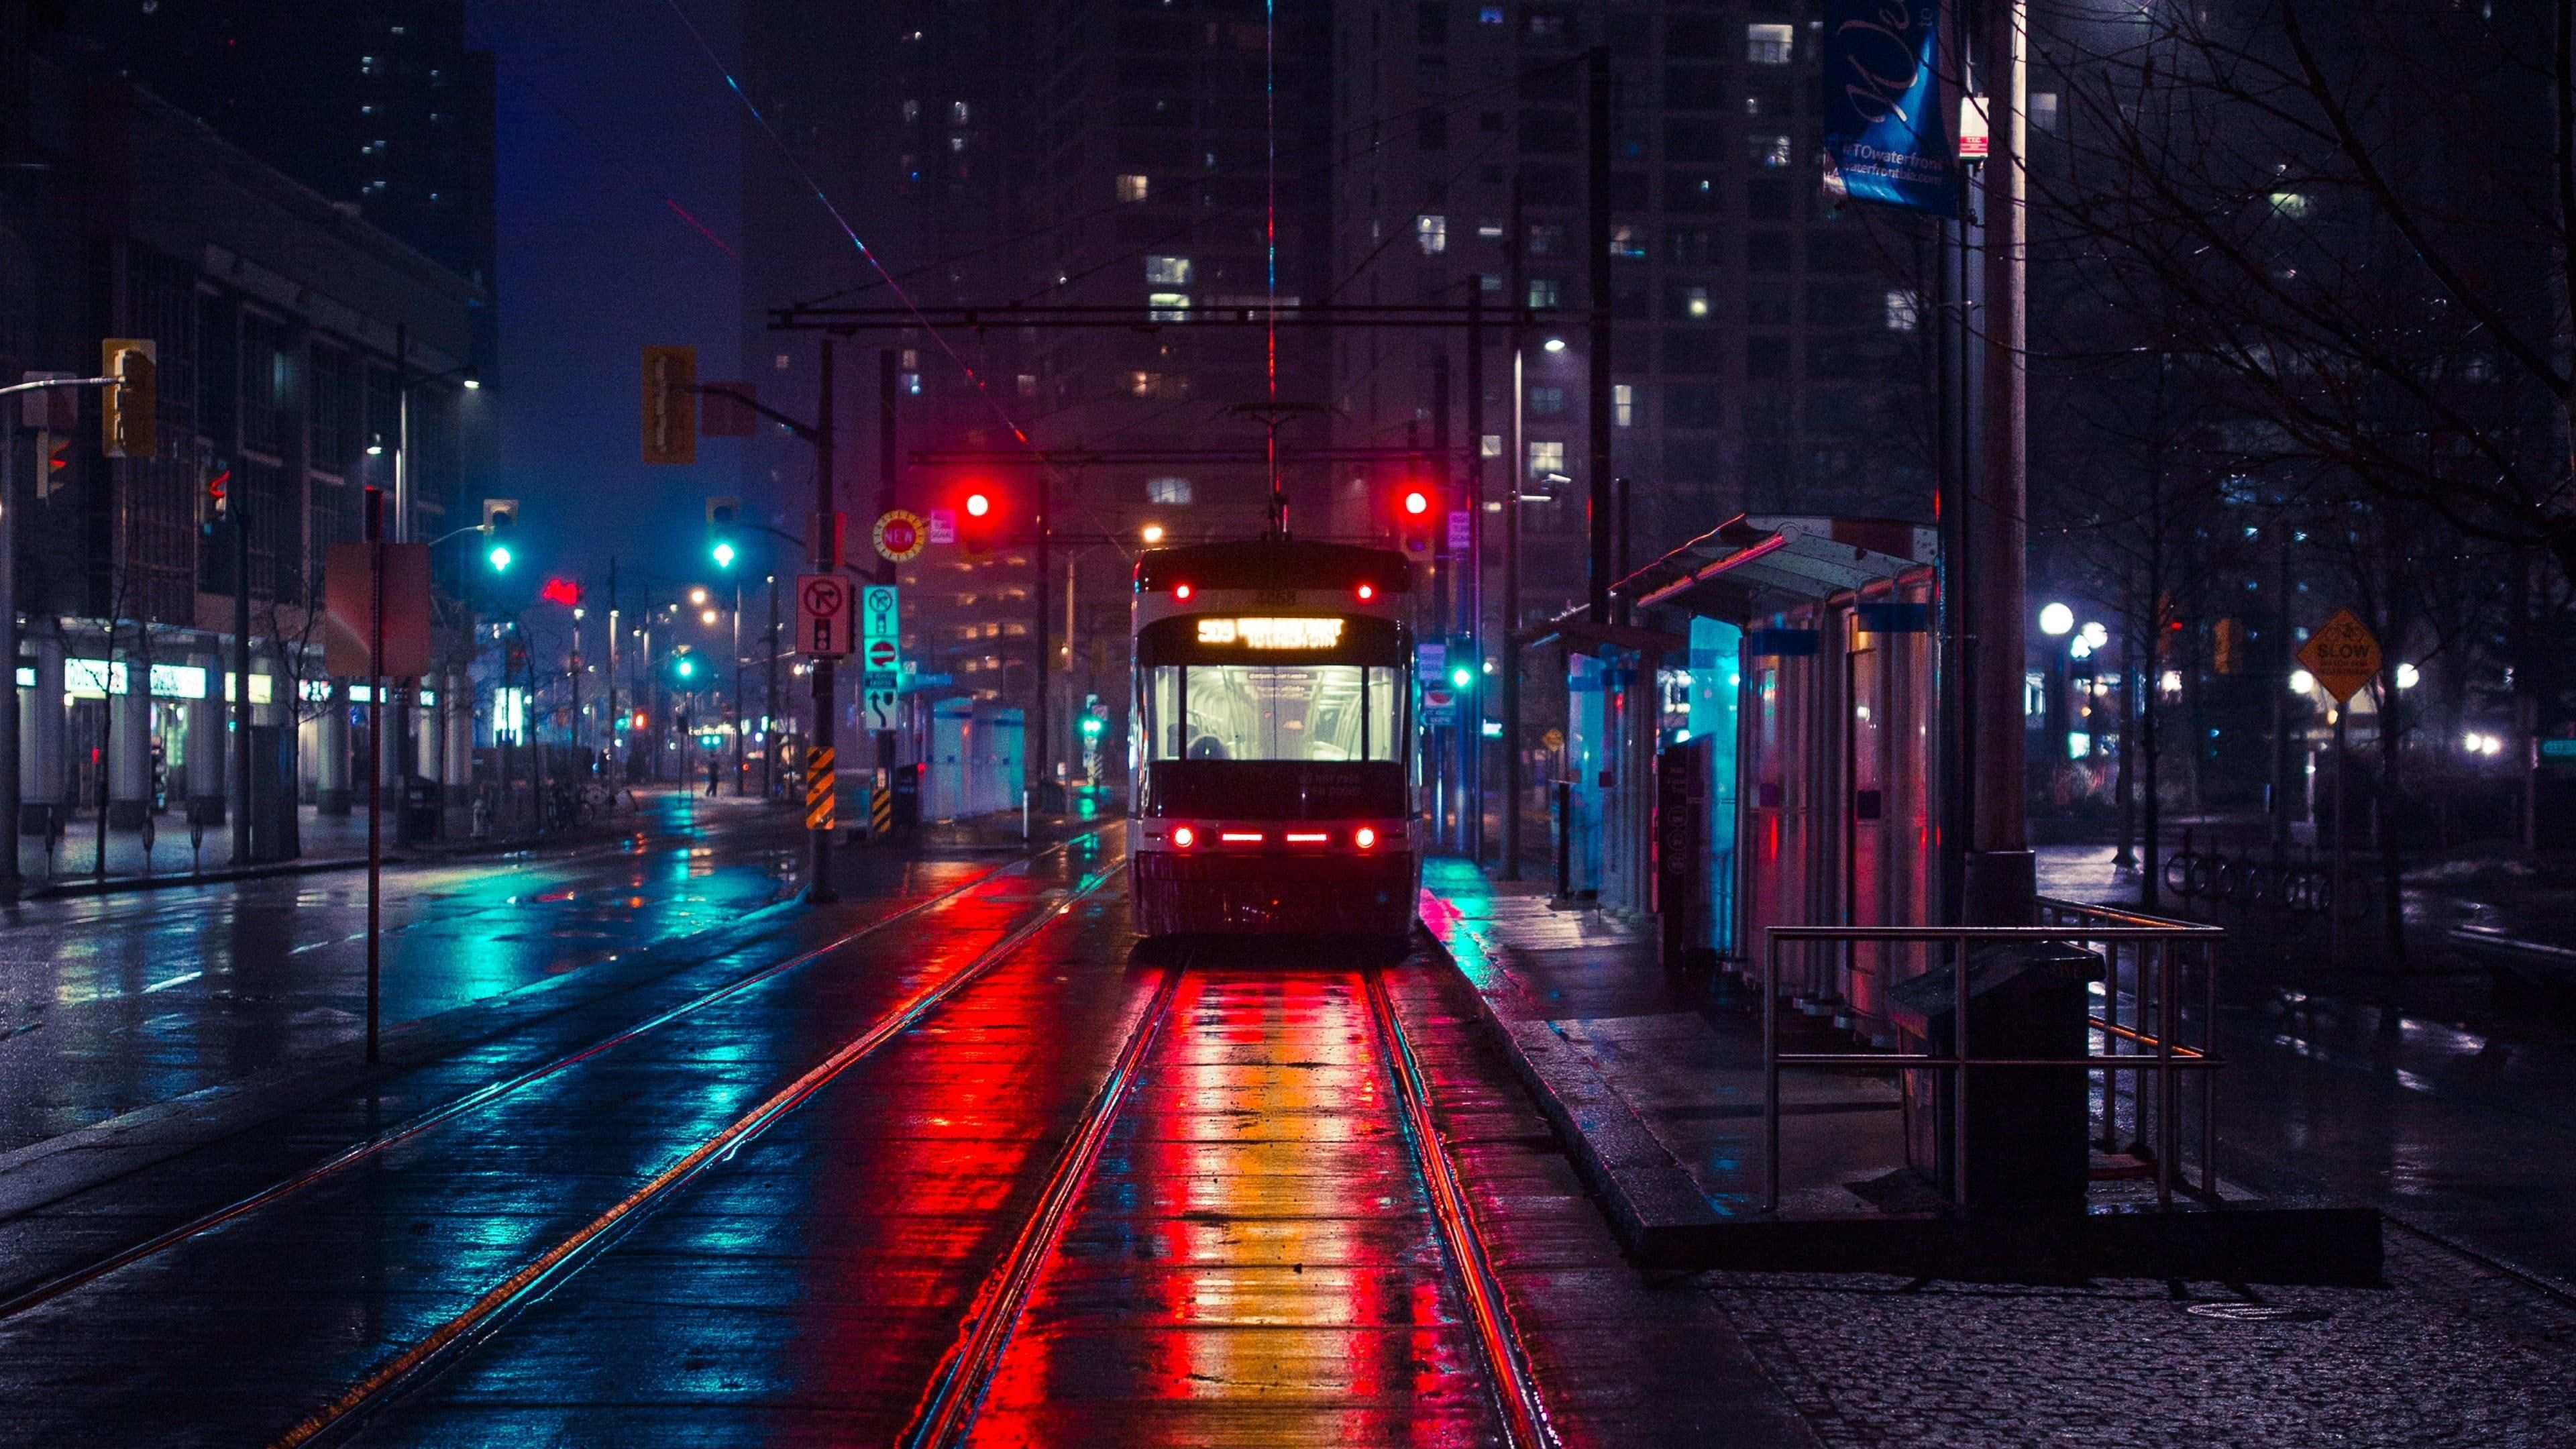 cityscape electric rail electricity darkness street downtown 3840x2160